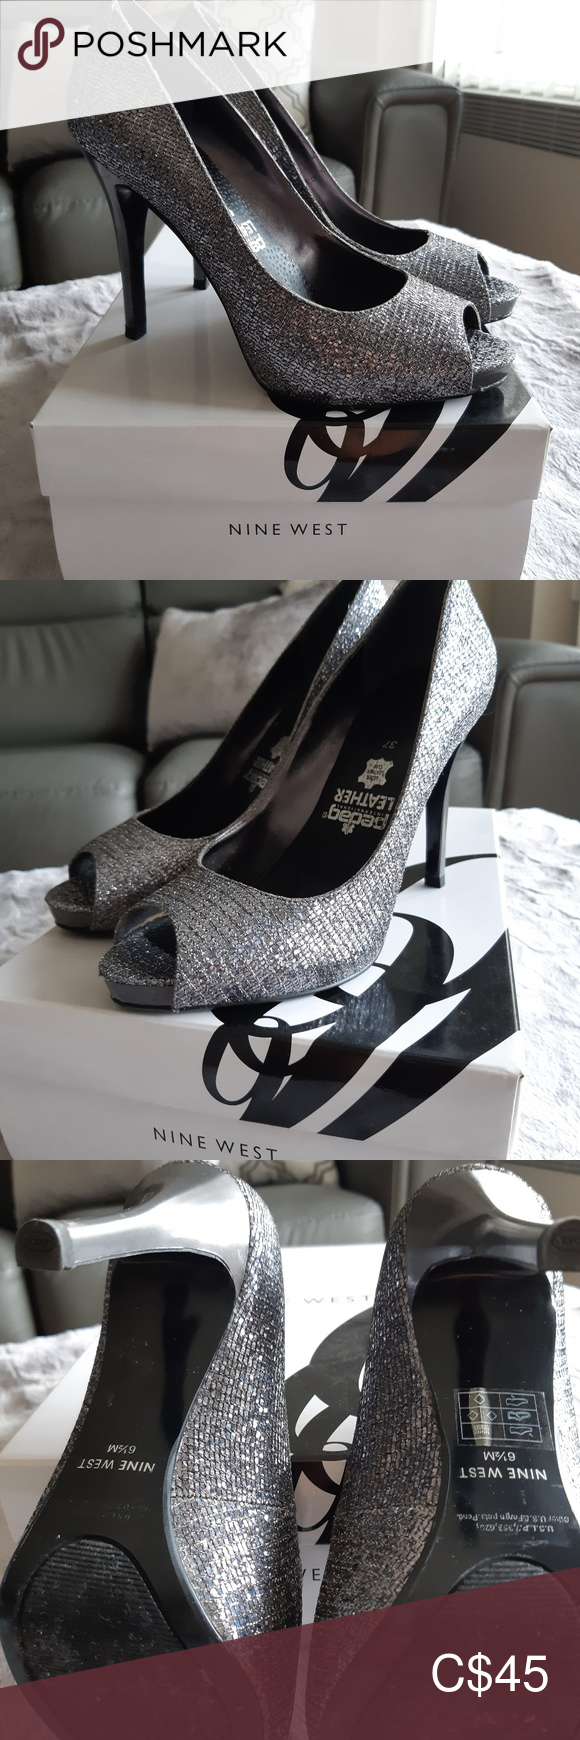 Nine West Silver Evening Shoe With Images Silver Evening Shoes Shoes Women Heels Evening Shoes